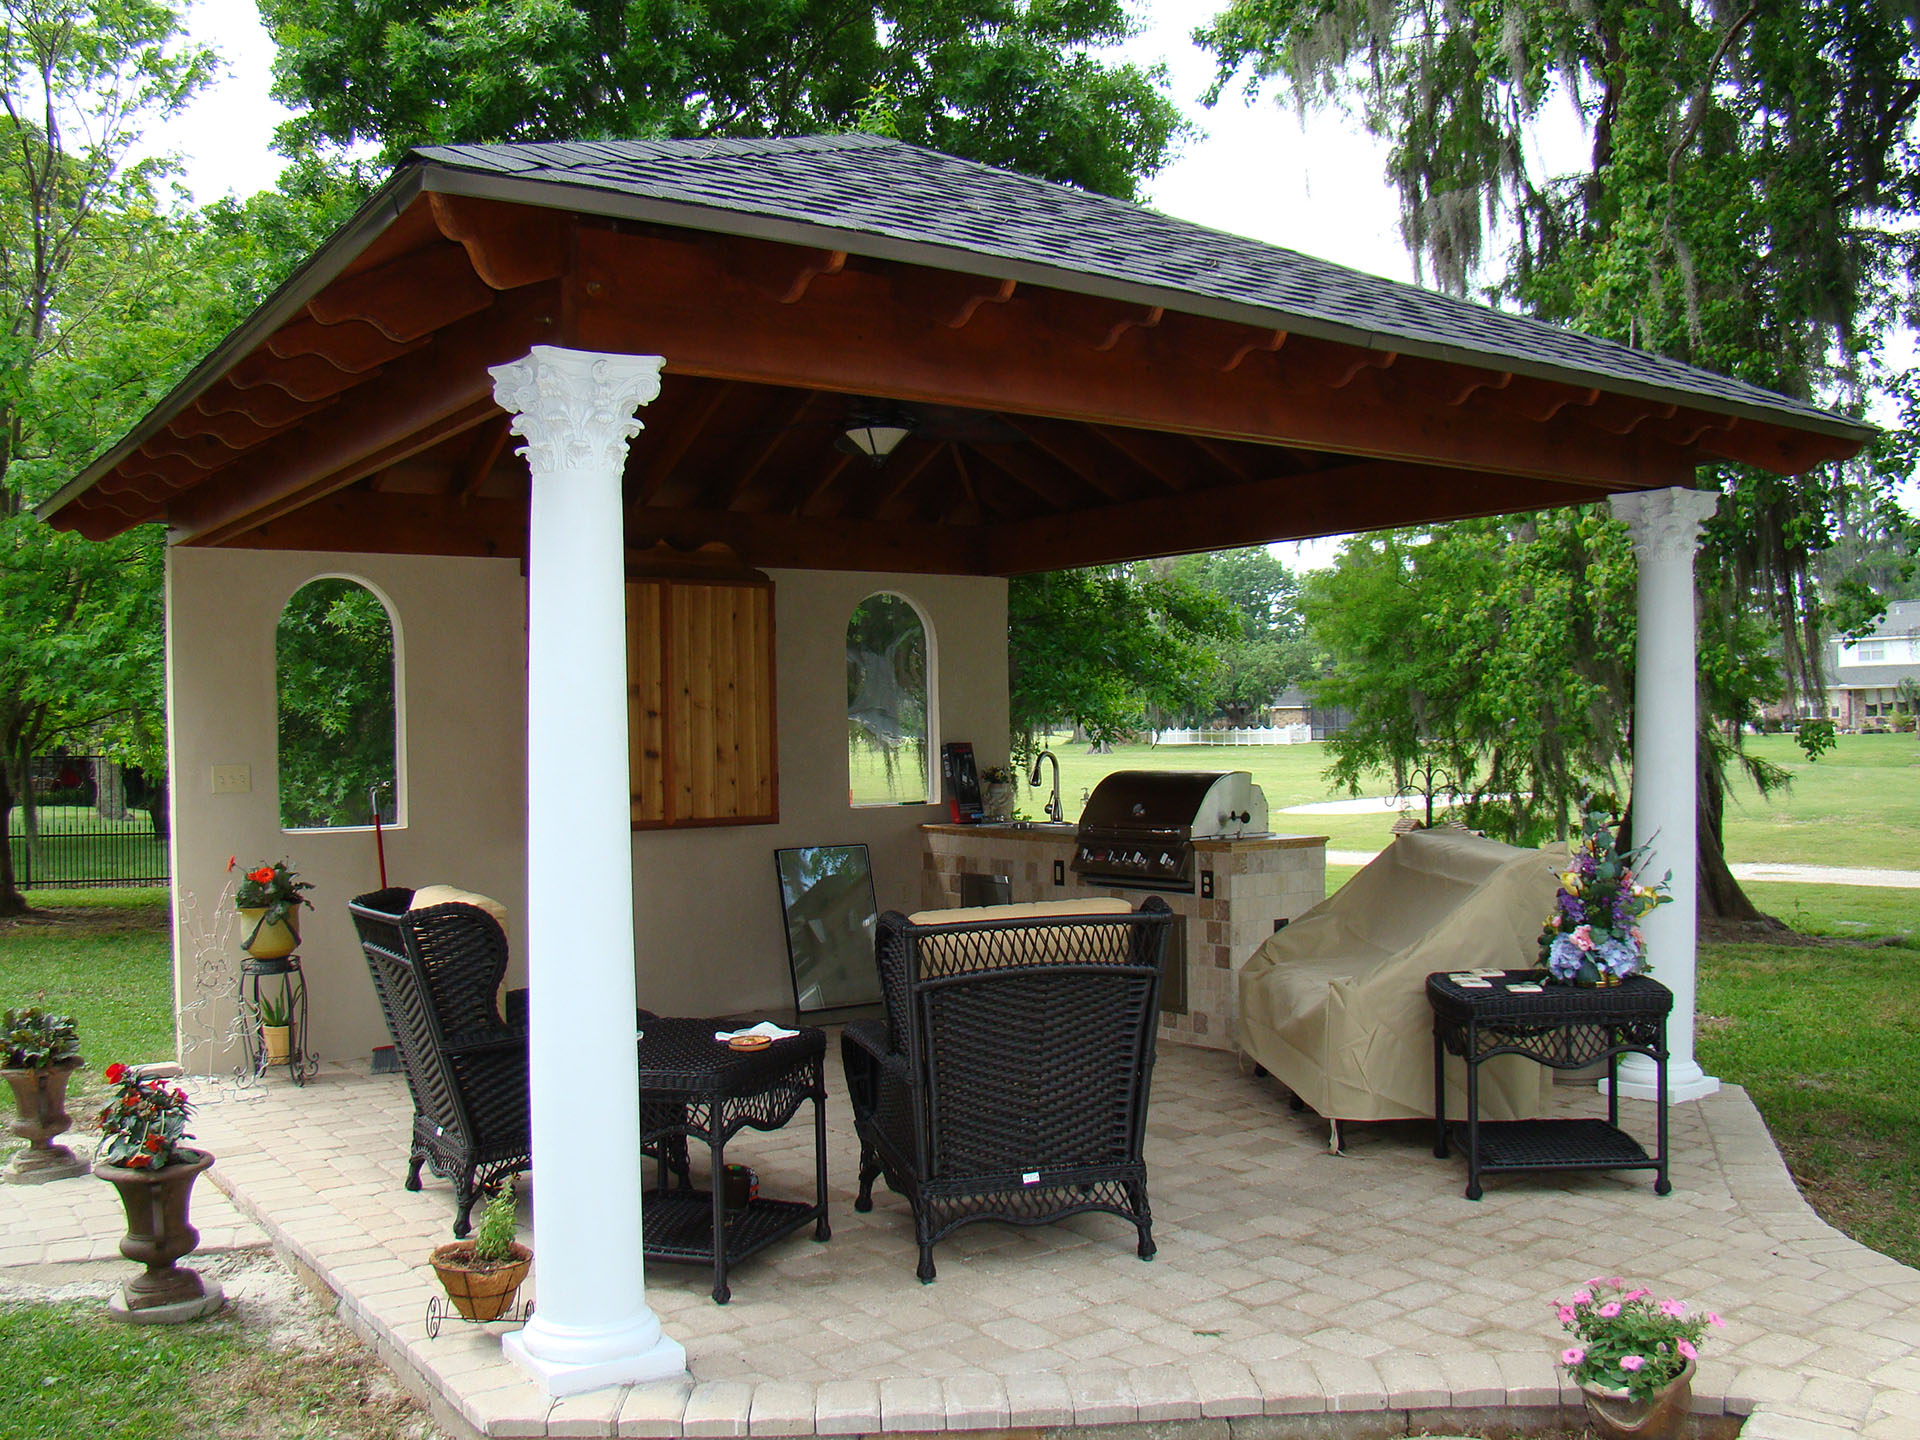 Pavilions | New Orleans Garden Pavilions | Custom Outdoor ... on Outdoor Patio Pavilion id=51727